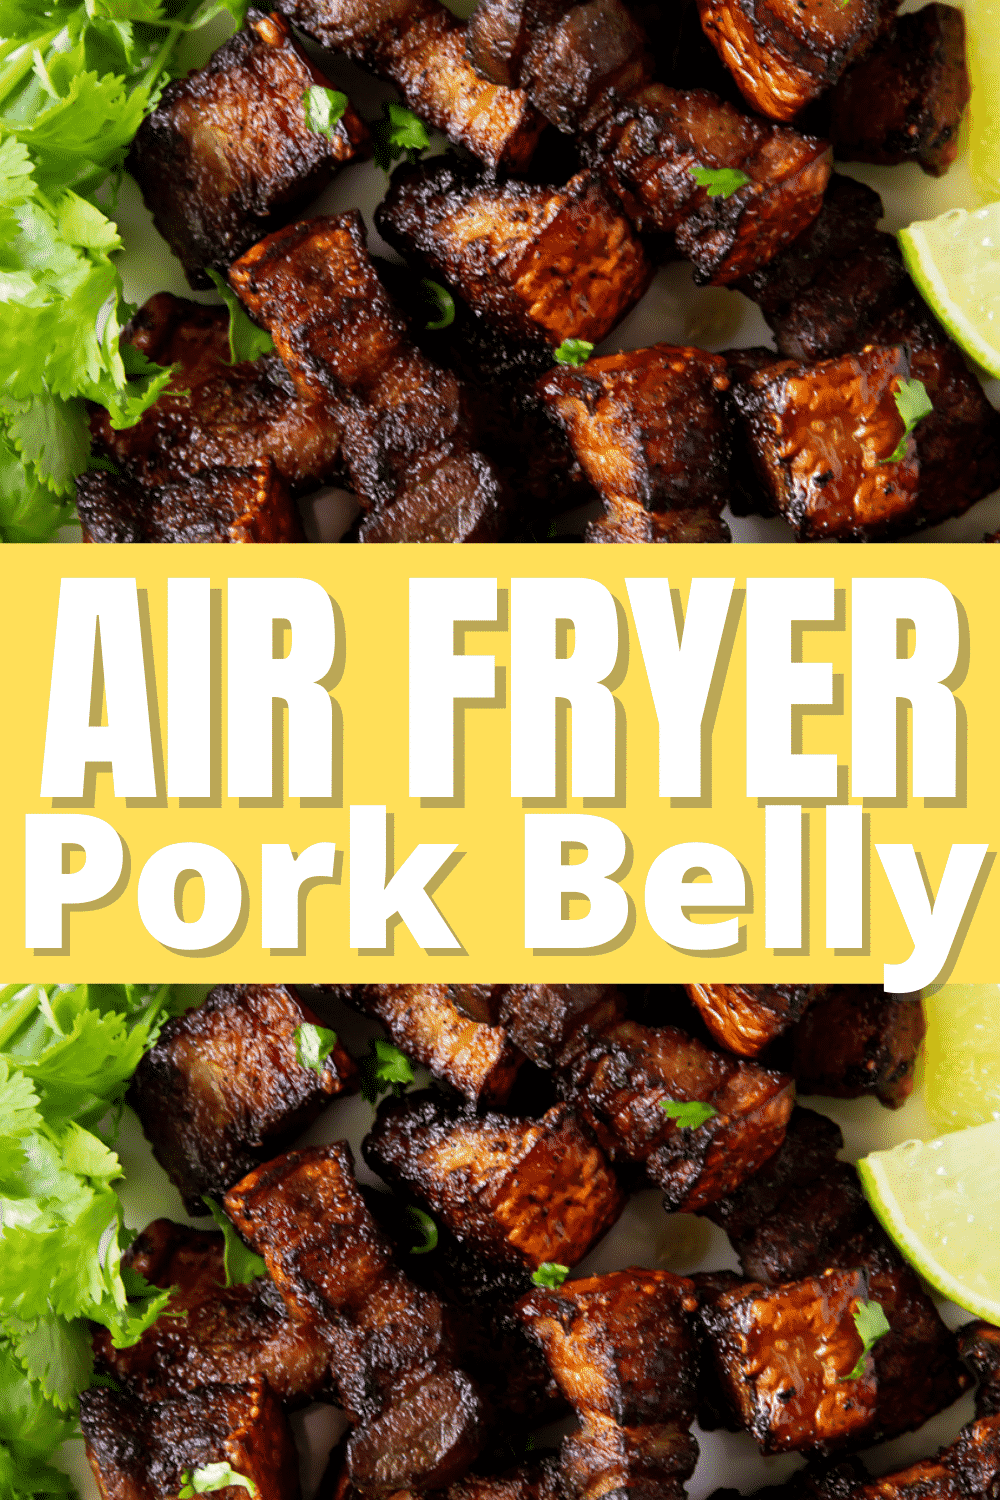 These little bites of Air Fryer Pork Belly are crispy, salty, and absolutely delicious. They will melt in your mouth with amazing flavor and texture. #pork #airfryer #porkbelly via @vegetarianmamma